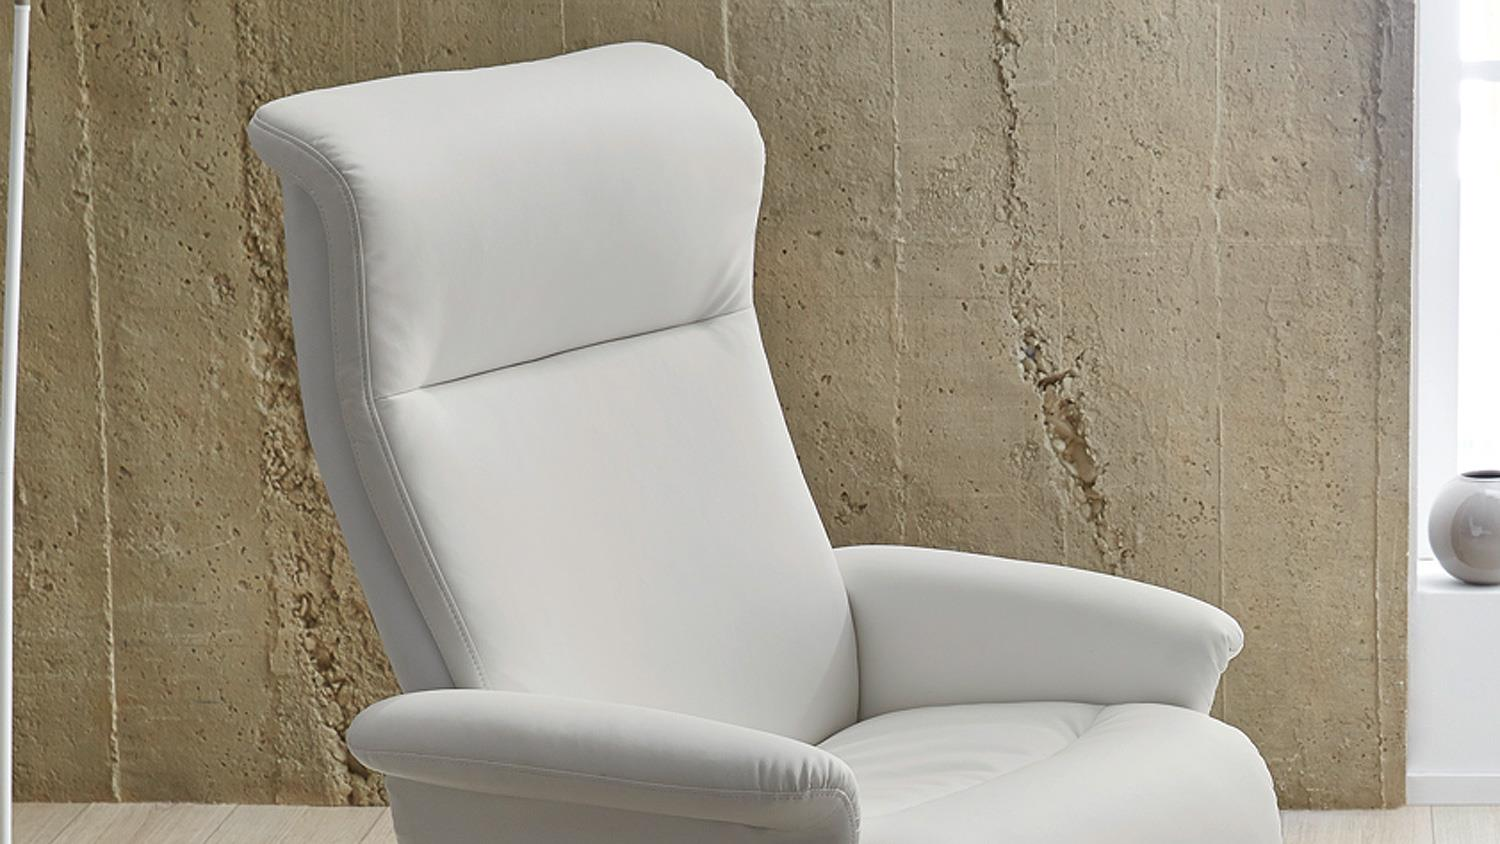 Relaxsessel Weiß Relaxsessel Ricarda Relax Chair In Weiß Inkl Hocker